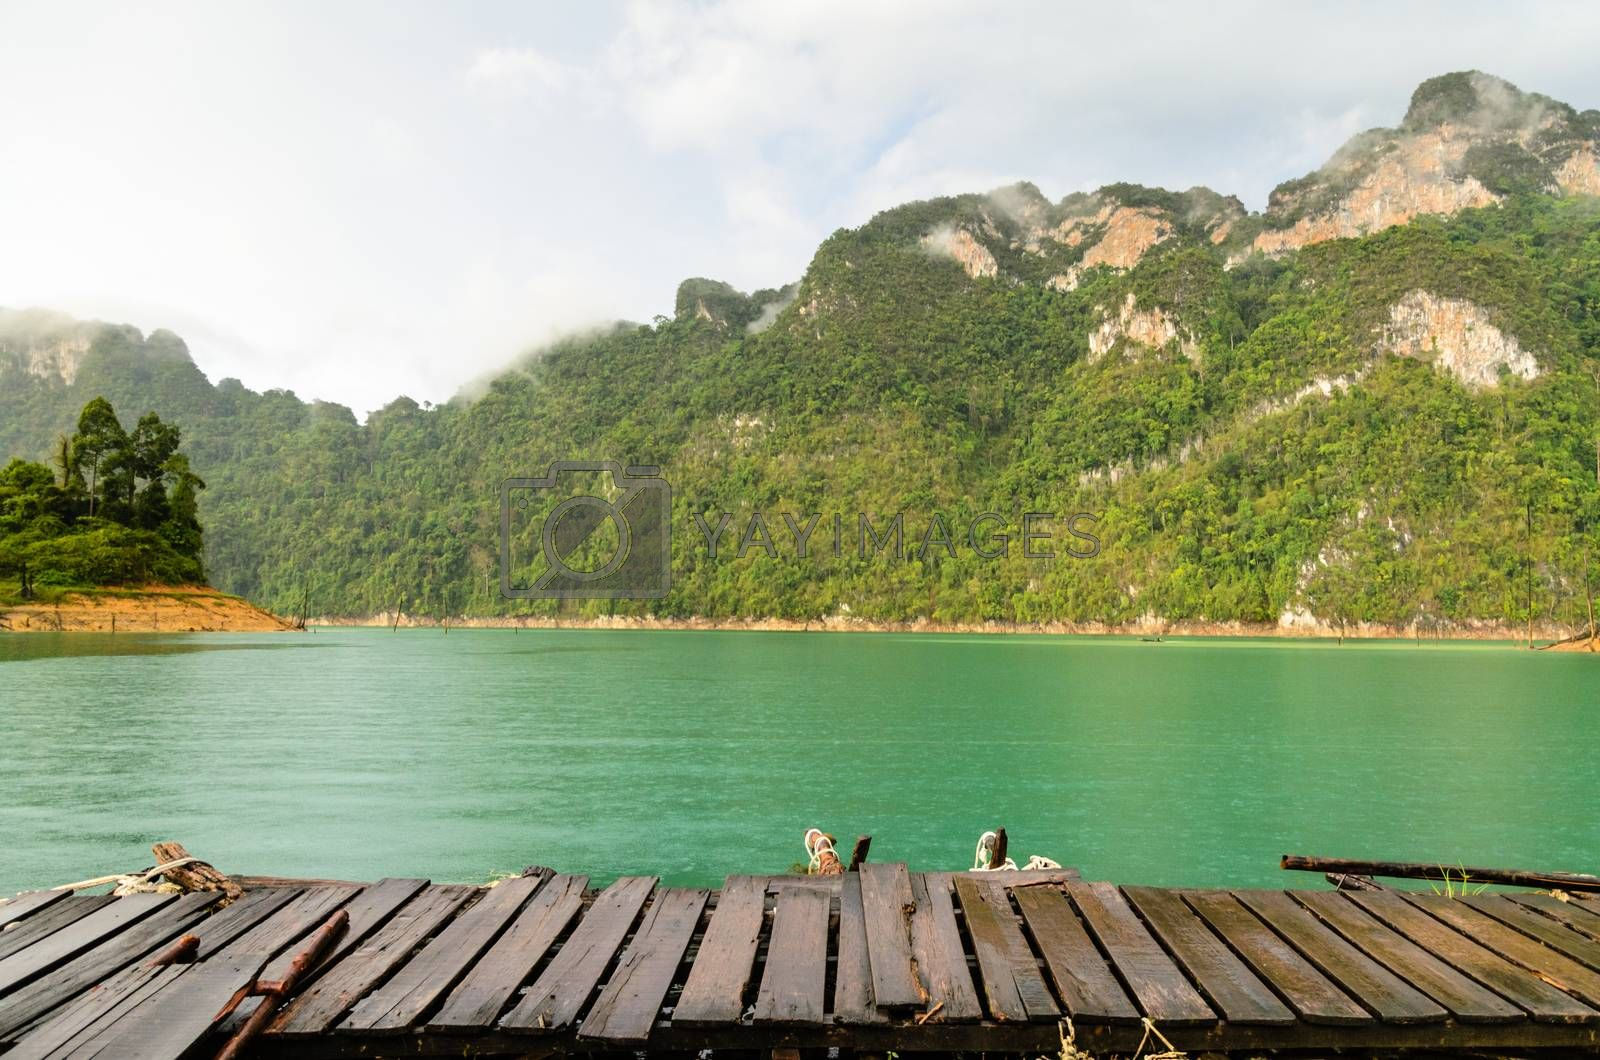 Mountain and river front of the hut while it was raining in Ratchaprapha Dam at Khao Sok National Park, Surat Thani Province, Thailand